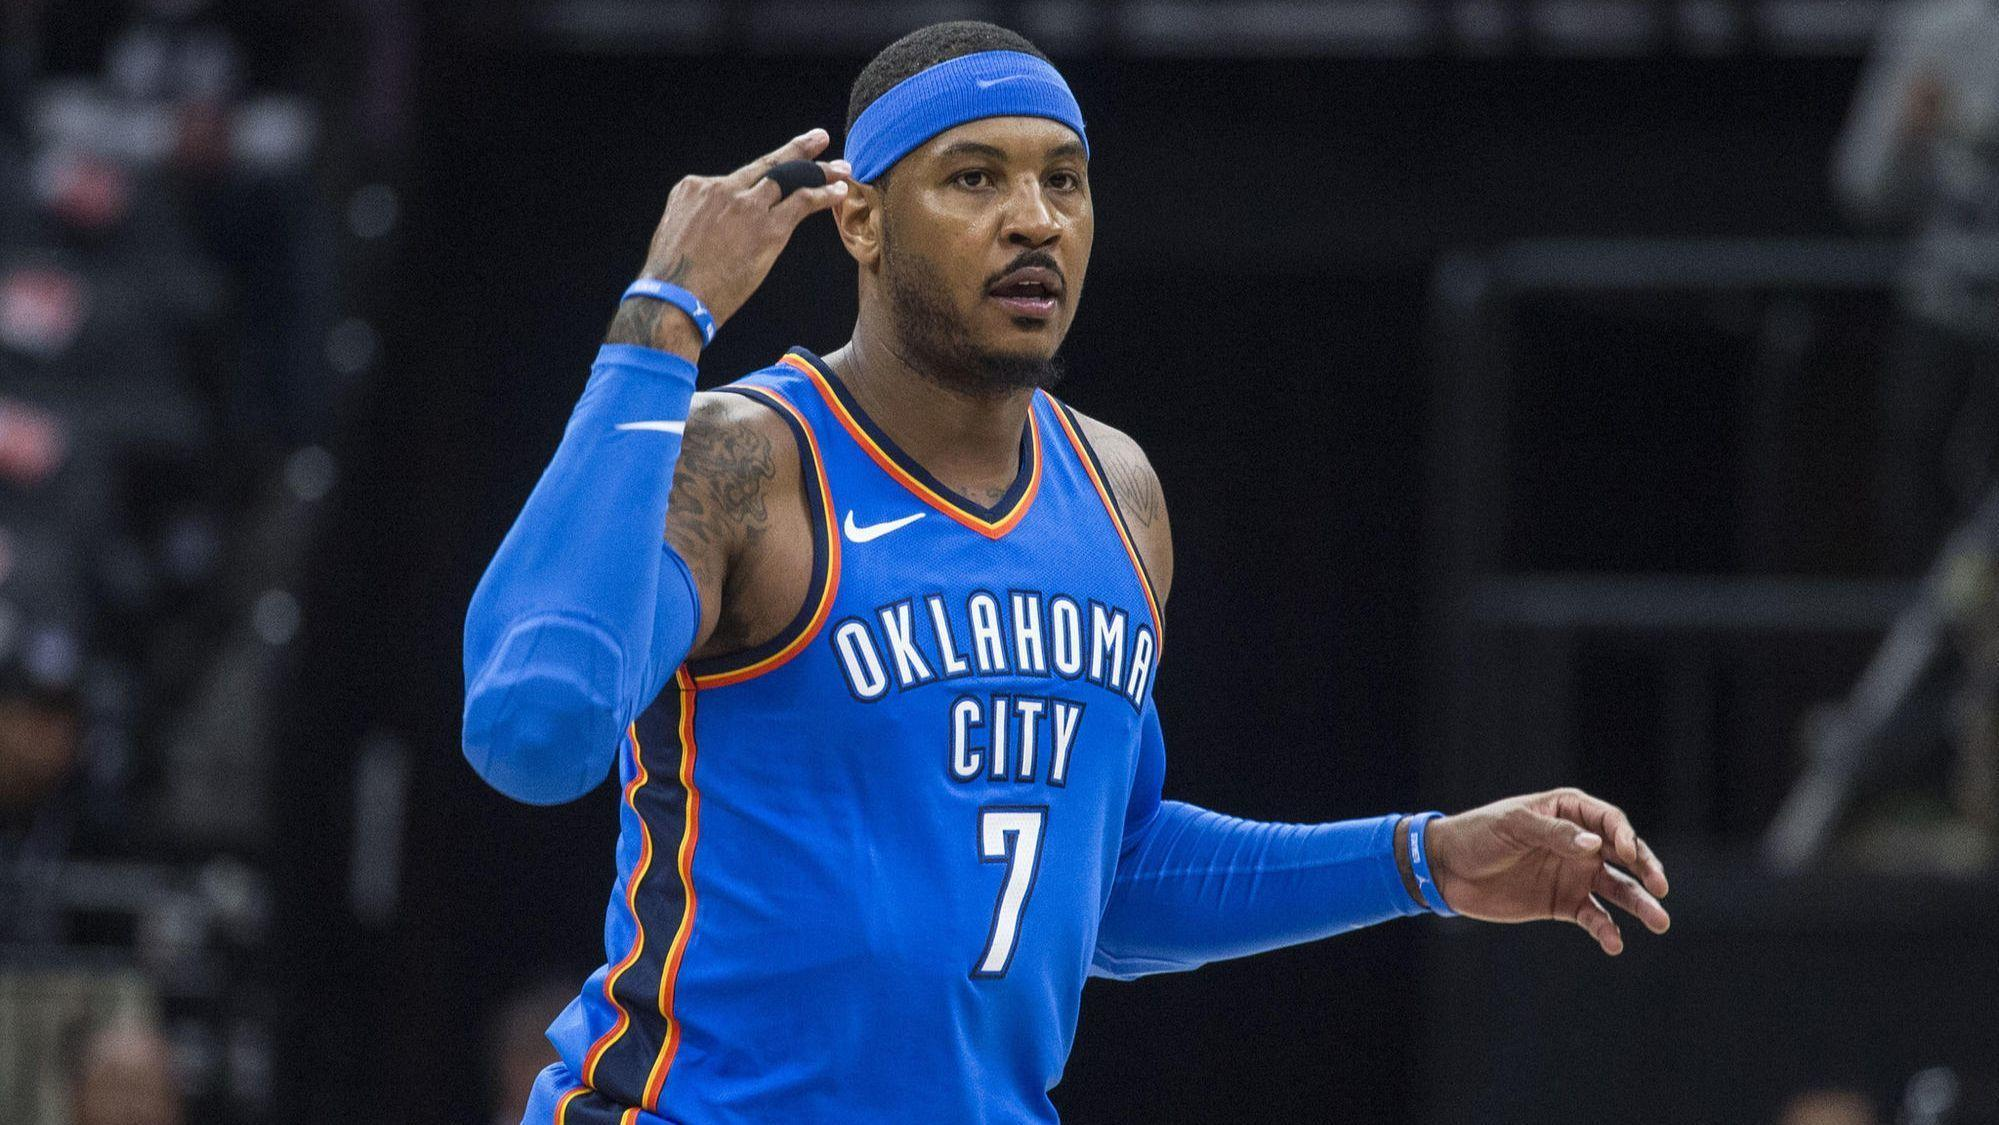 Hawks waive Carmelo Anthony, making him a free agent